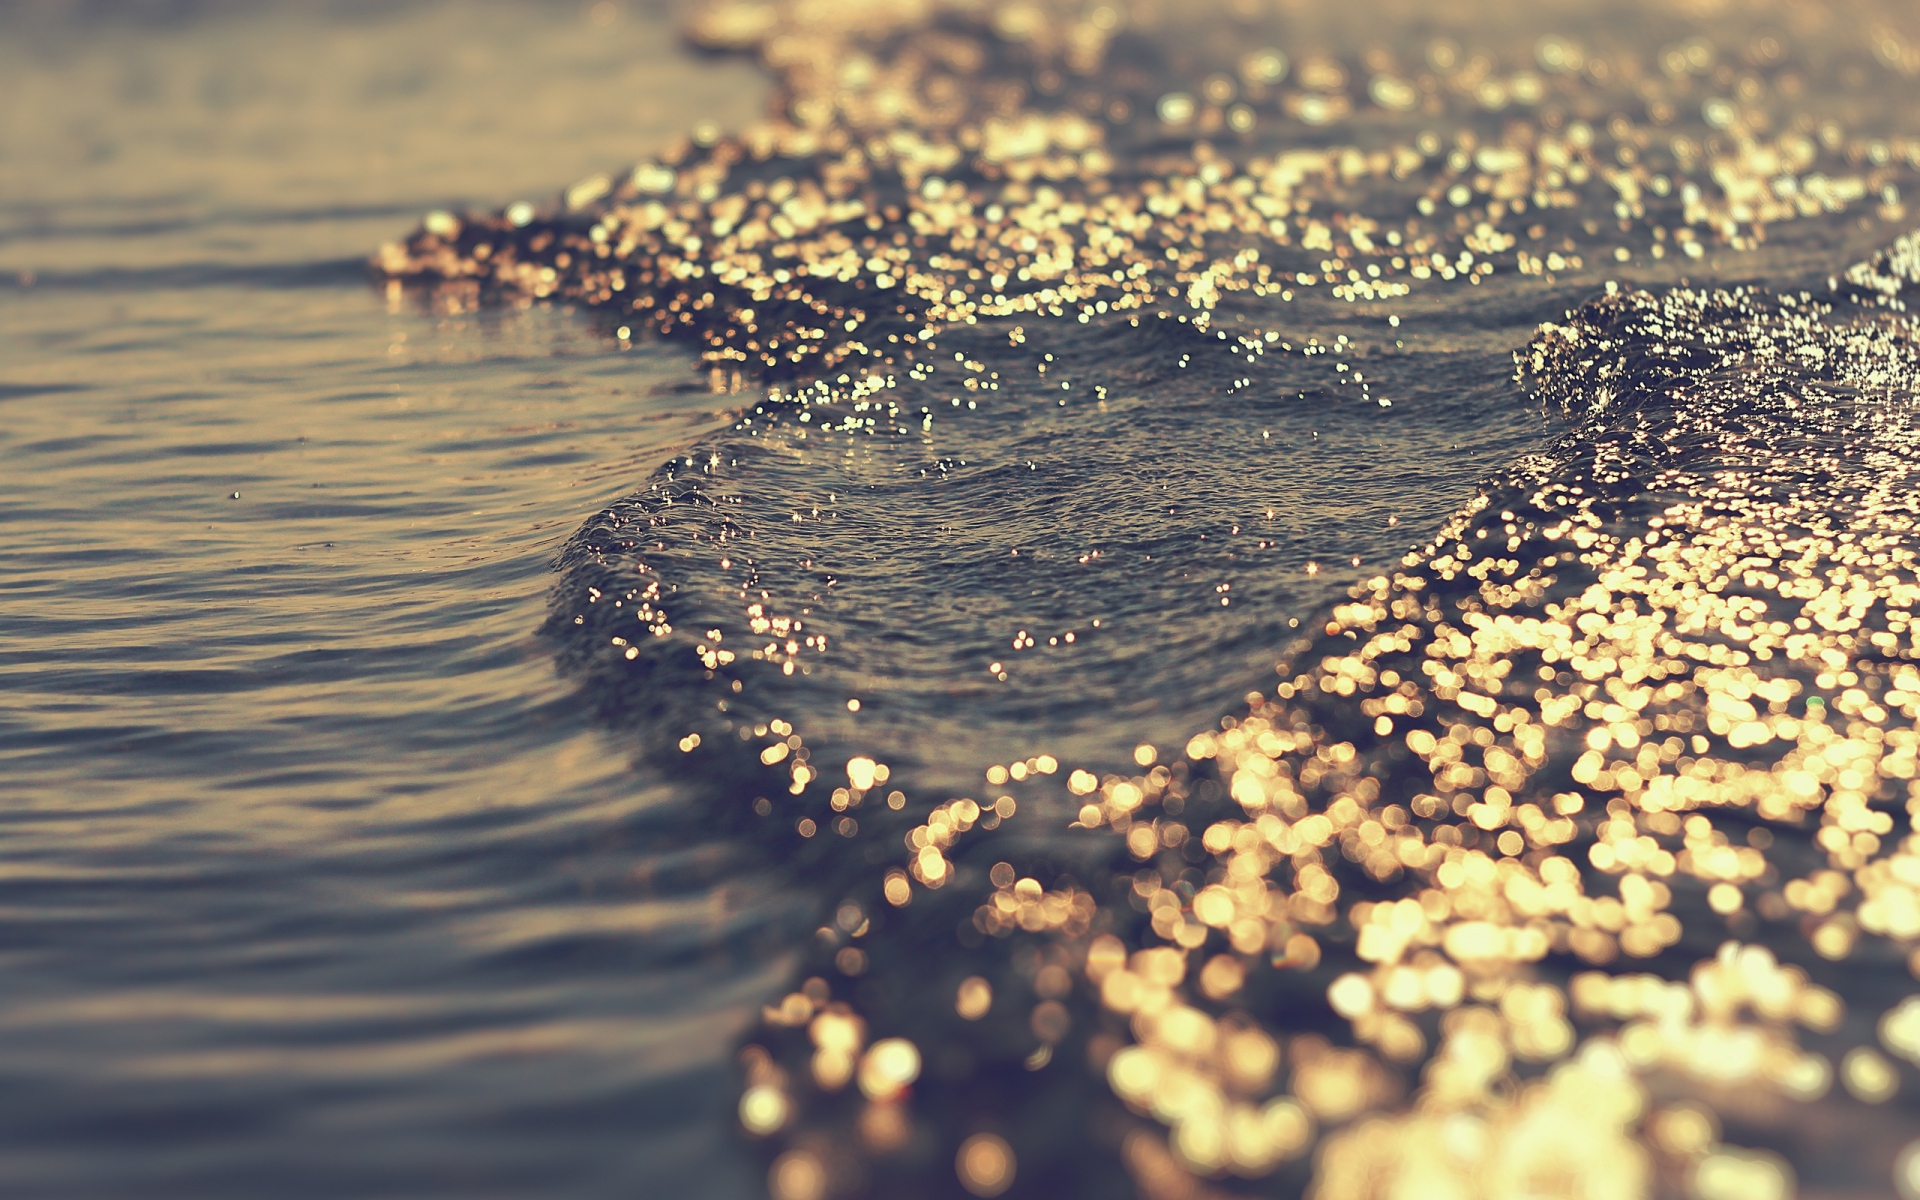 Shiny Water Background, Wallpaper, Image